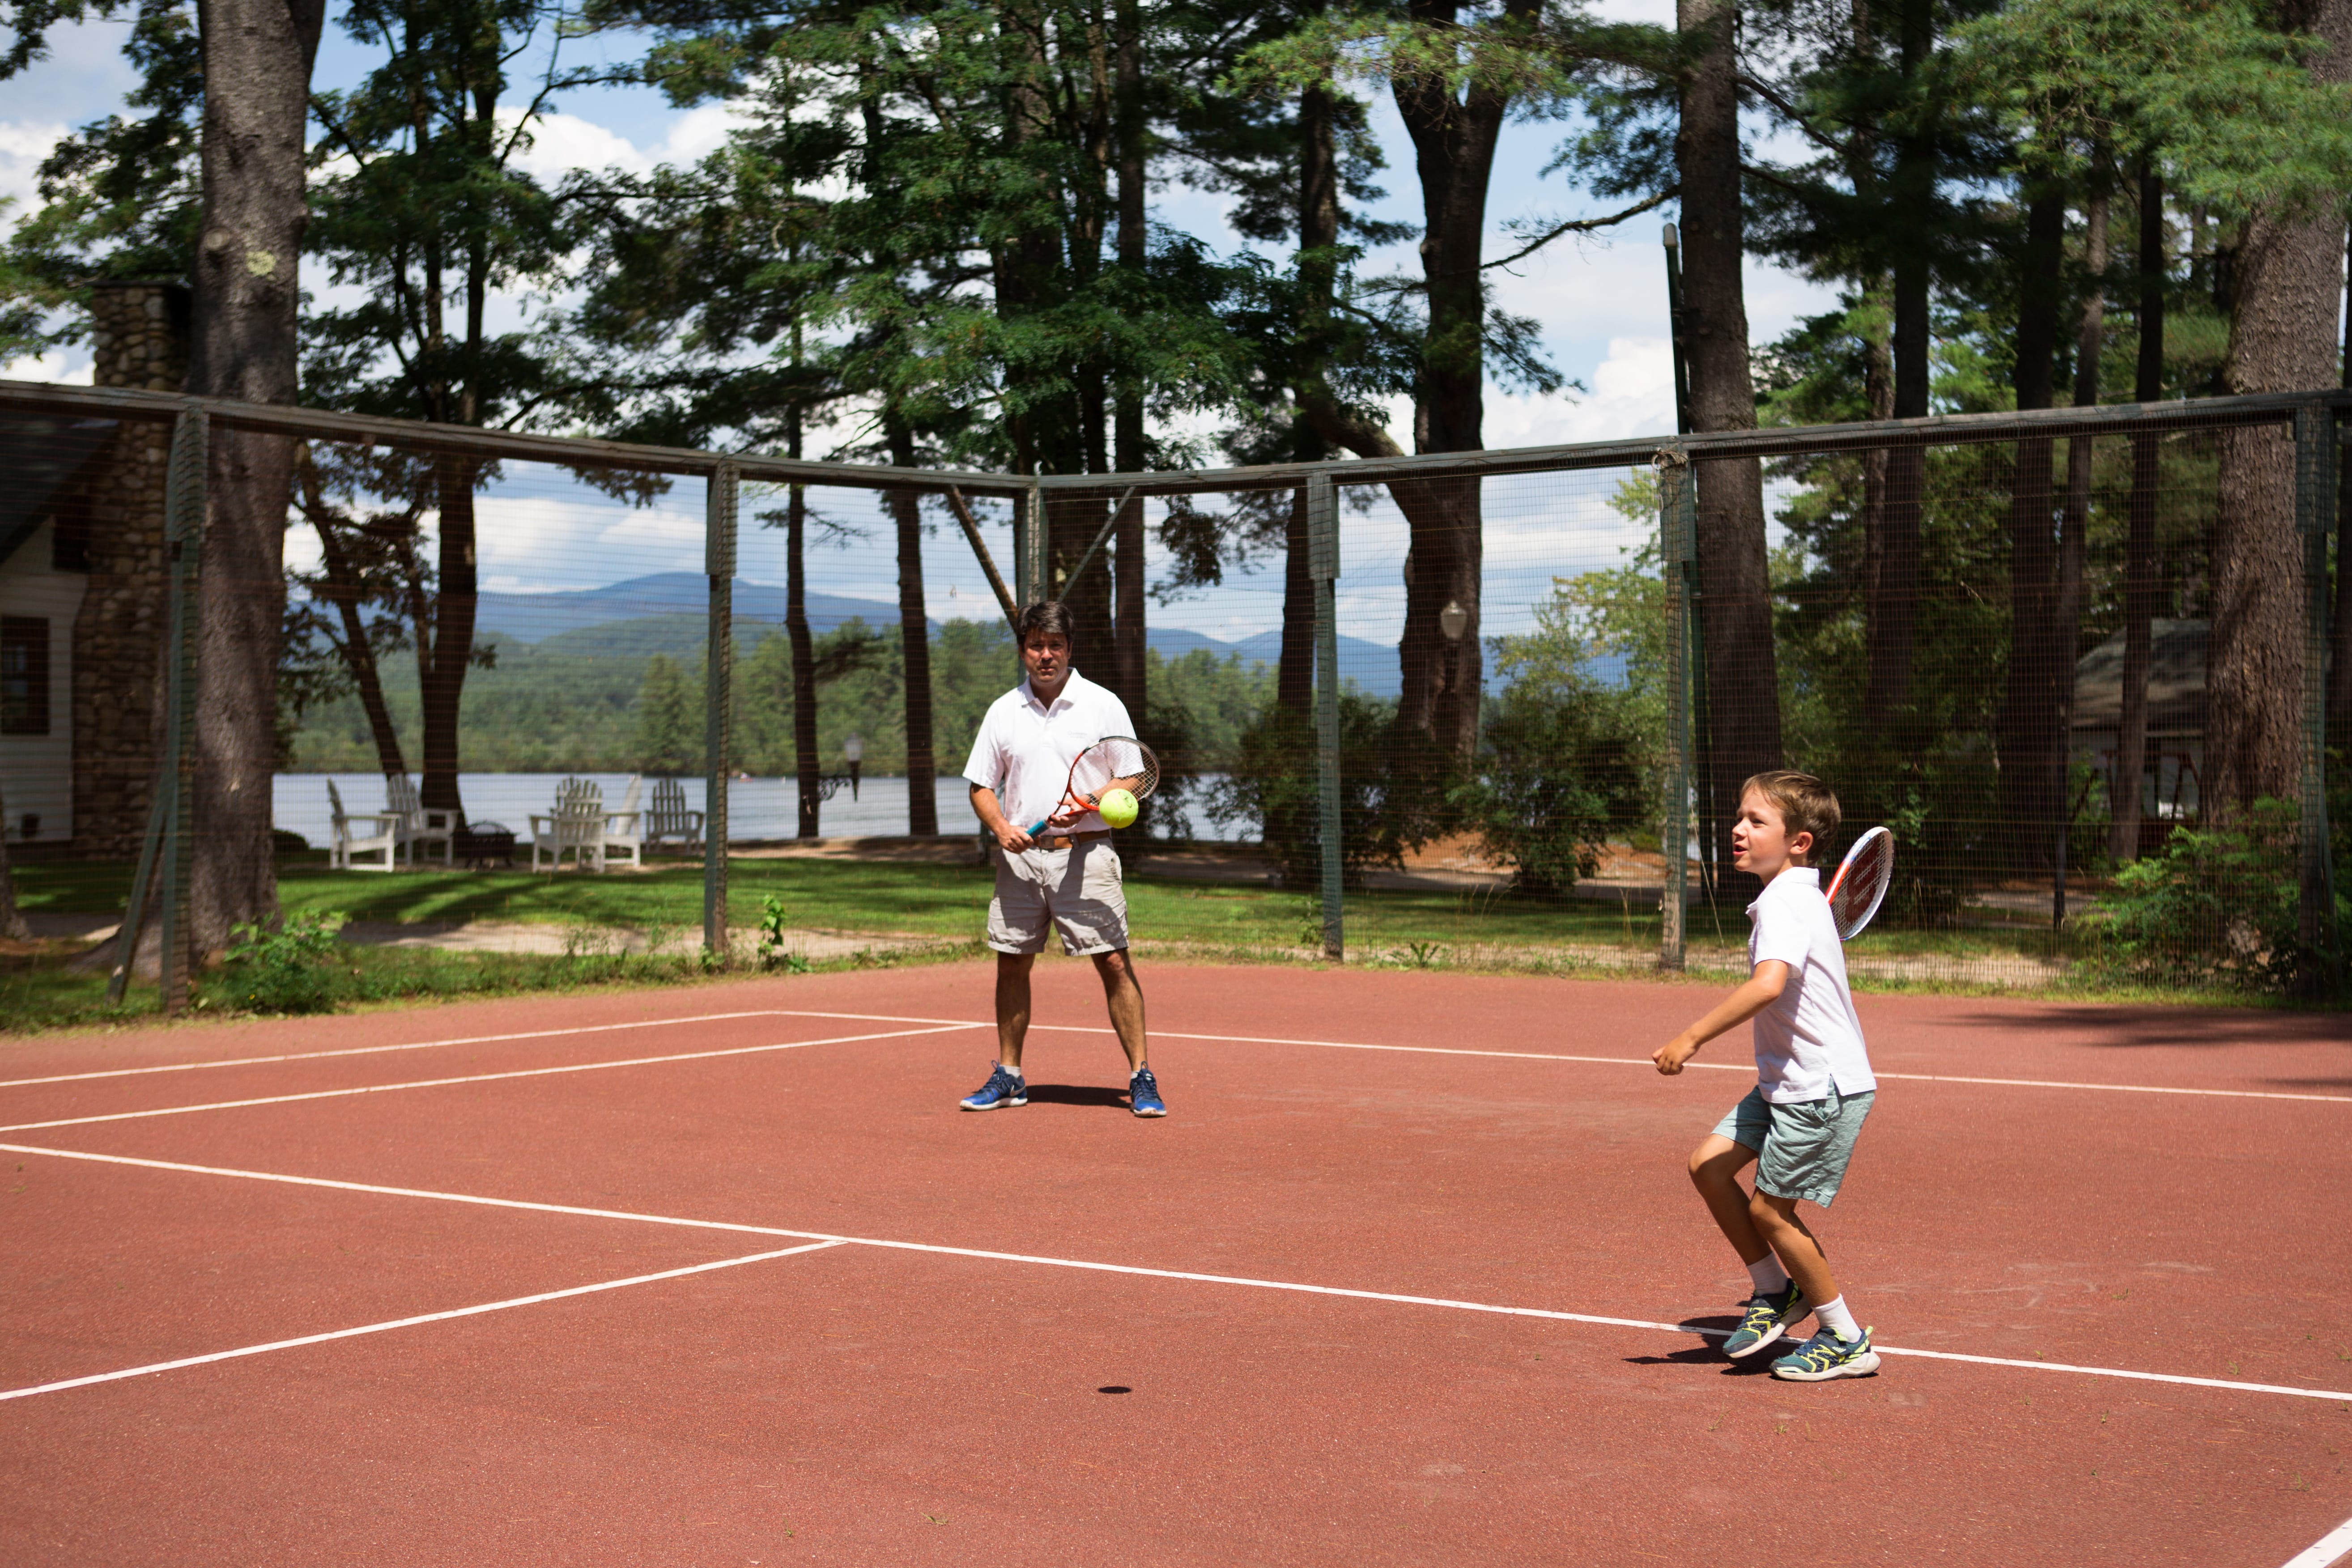 A man and young boy playing tennis